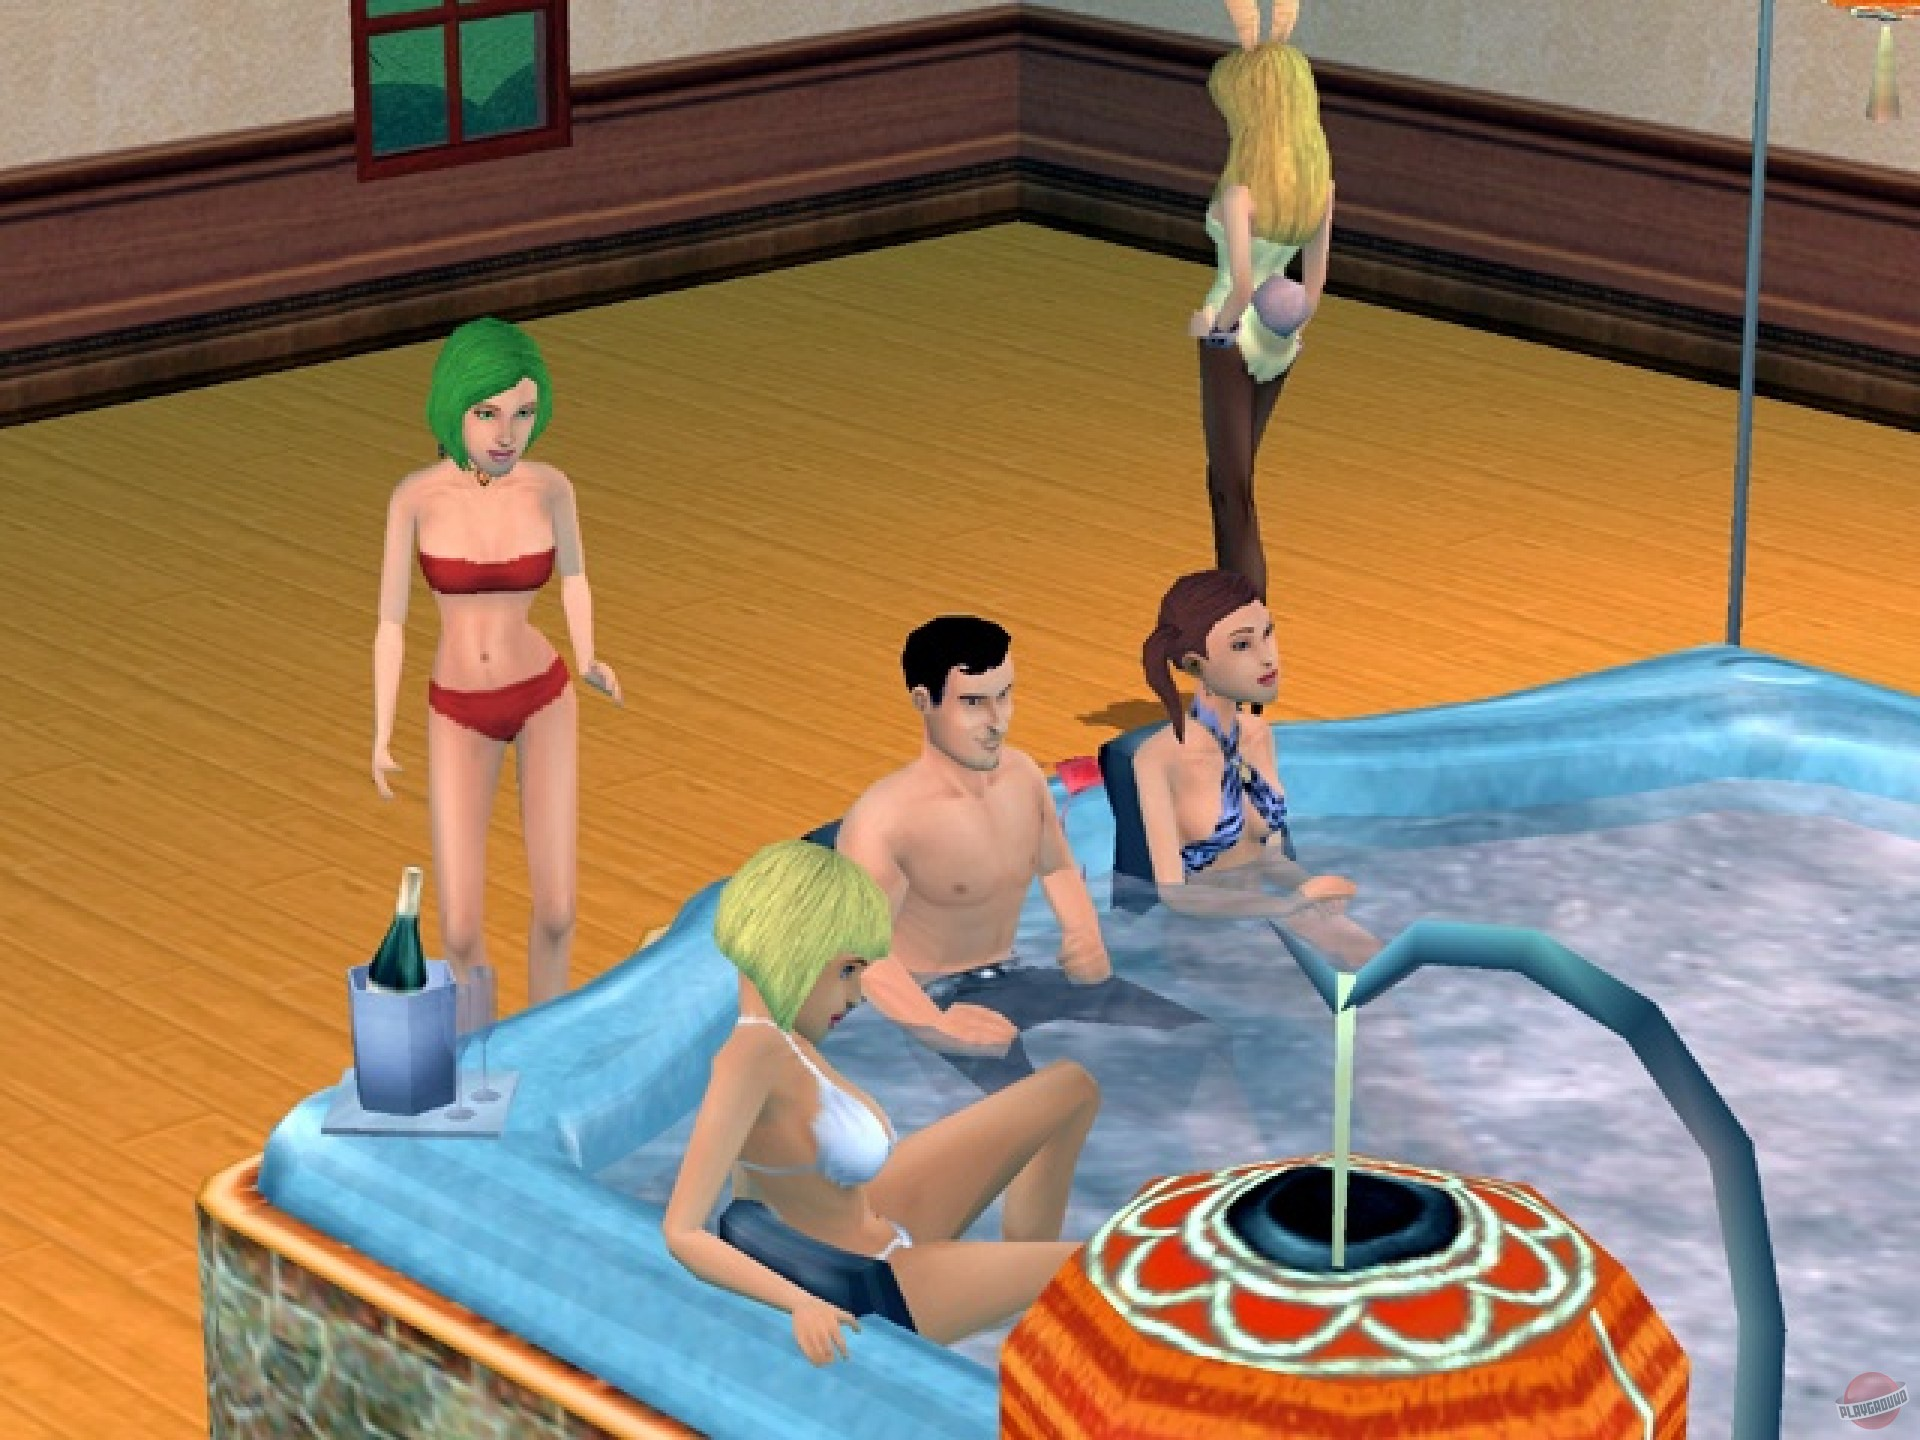 The sims 3 playboy fucks film